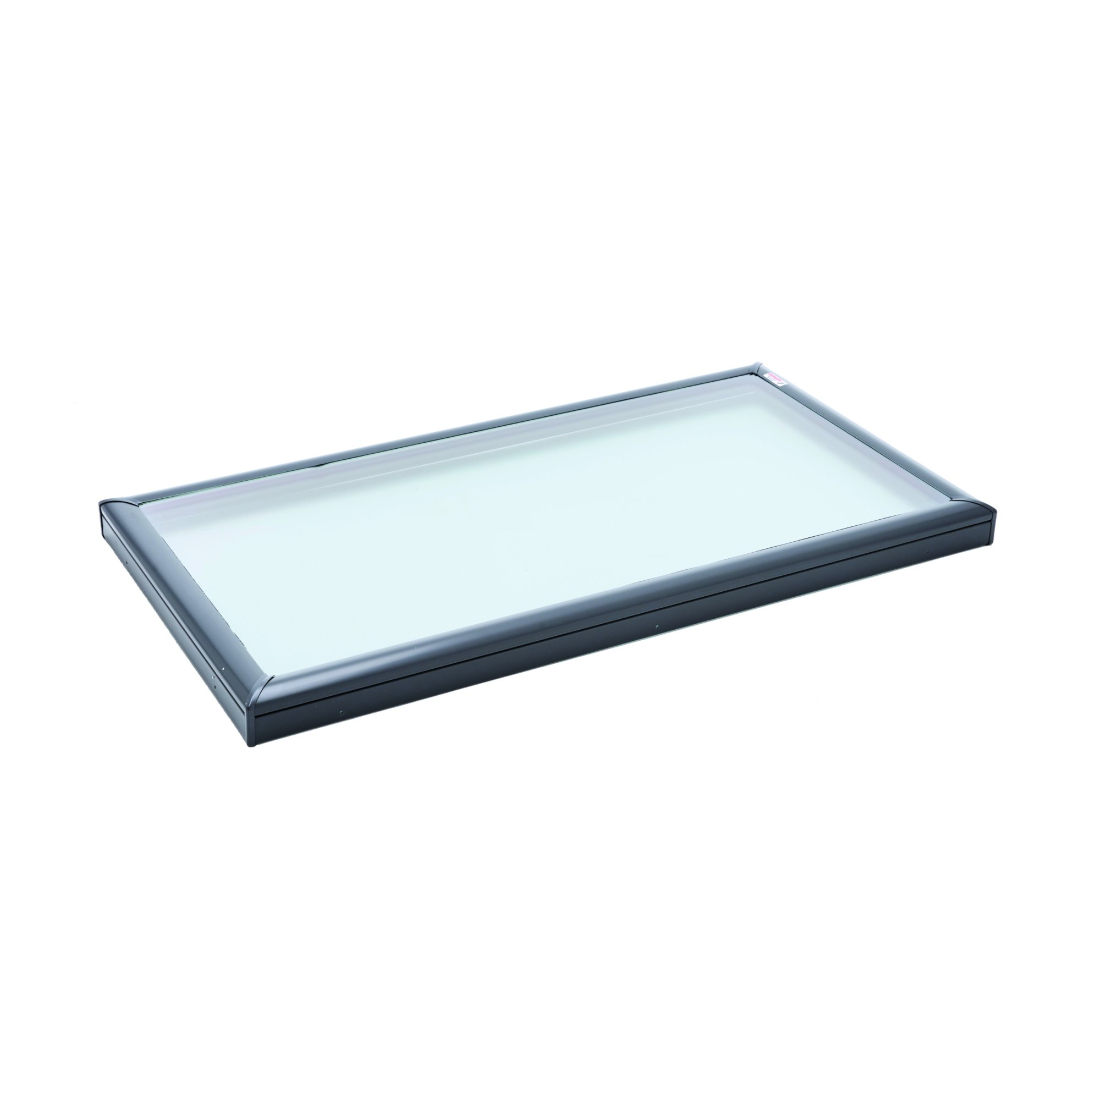 Low Pitch Fixed Skylight 895 x 895mm